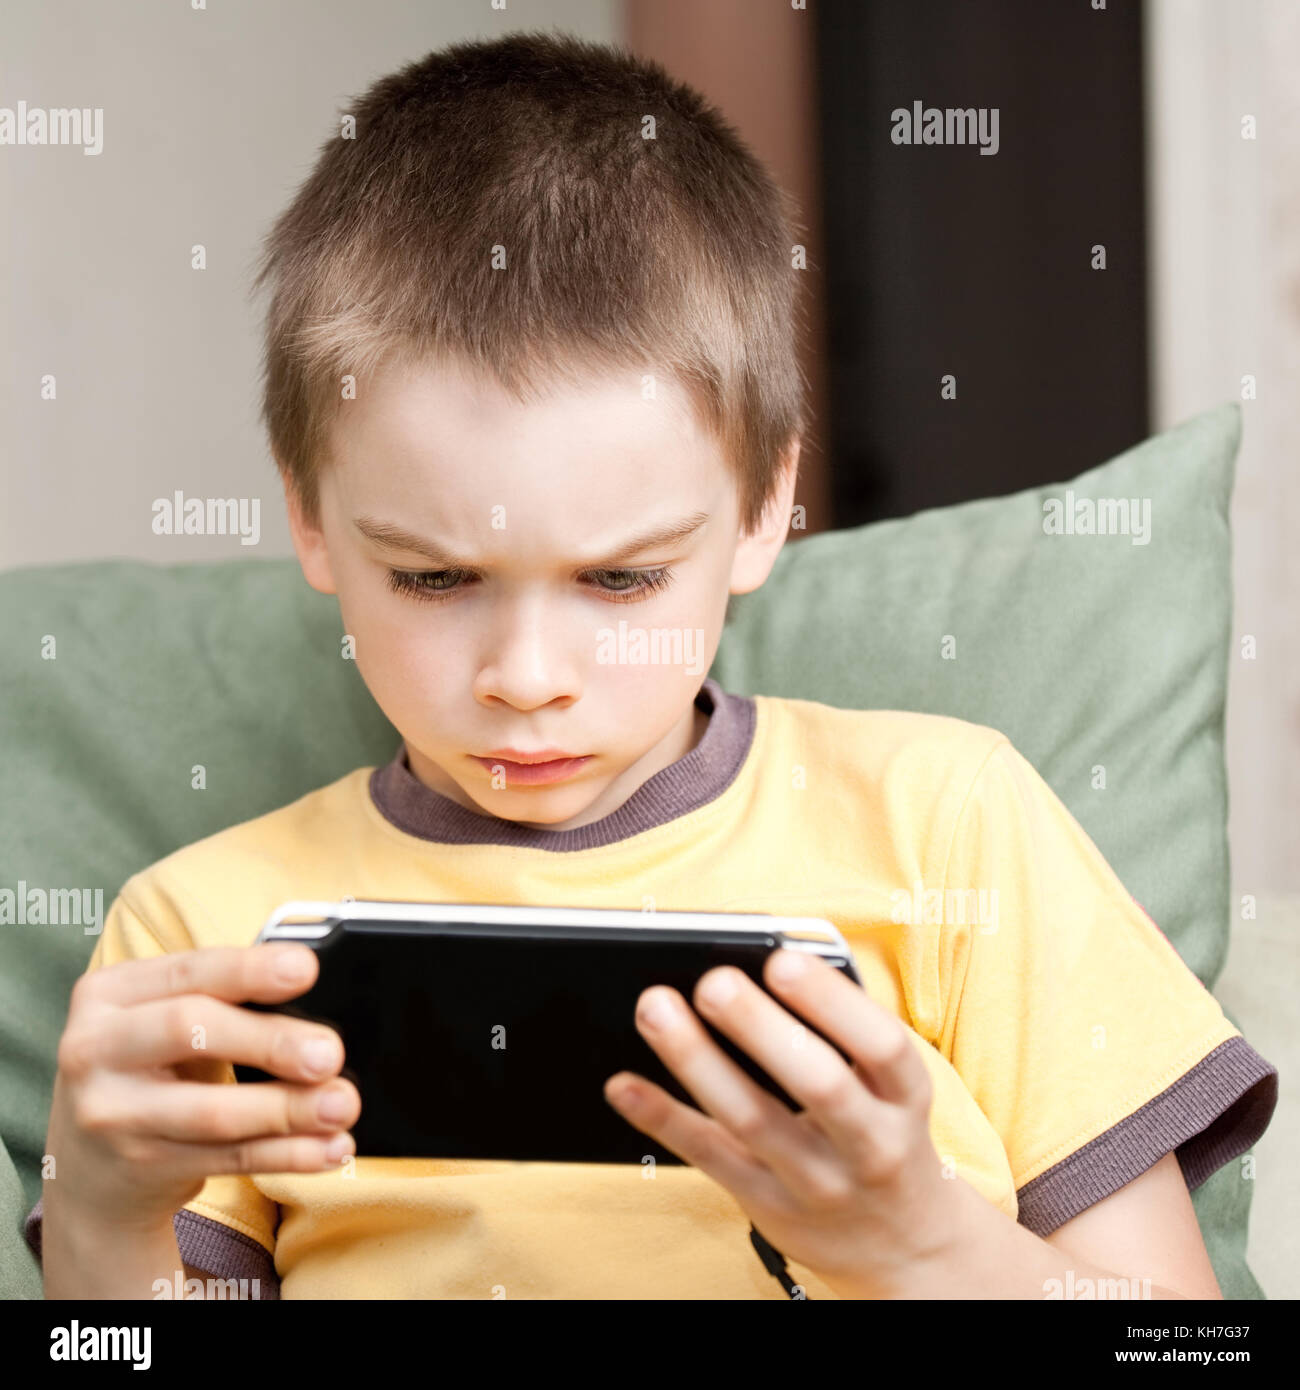 Young boy playing handheld game console Stock Photo